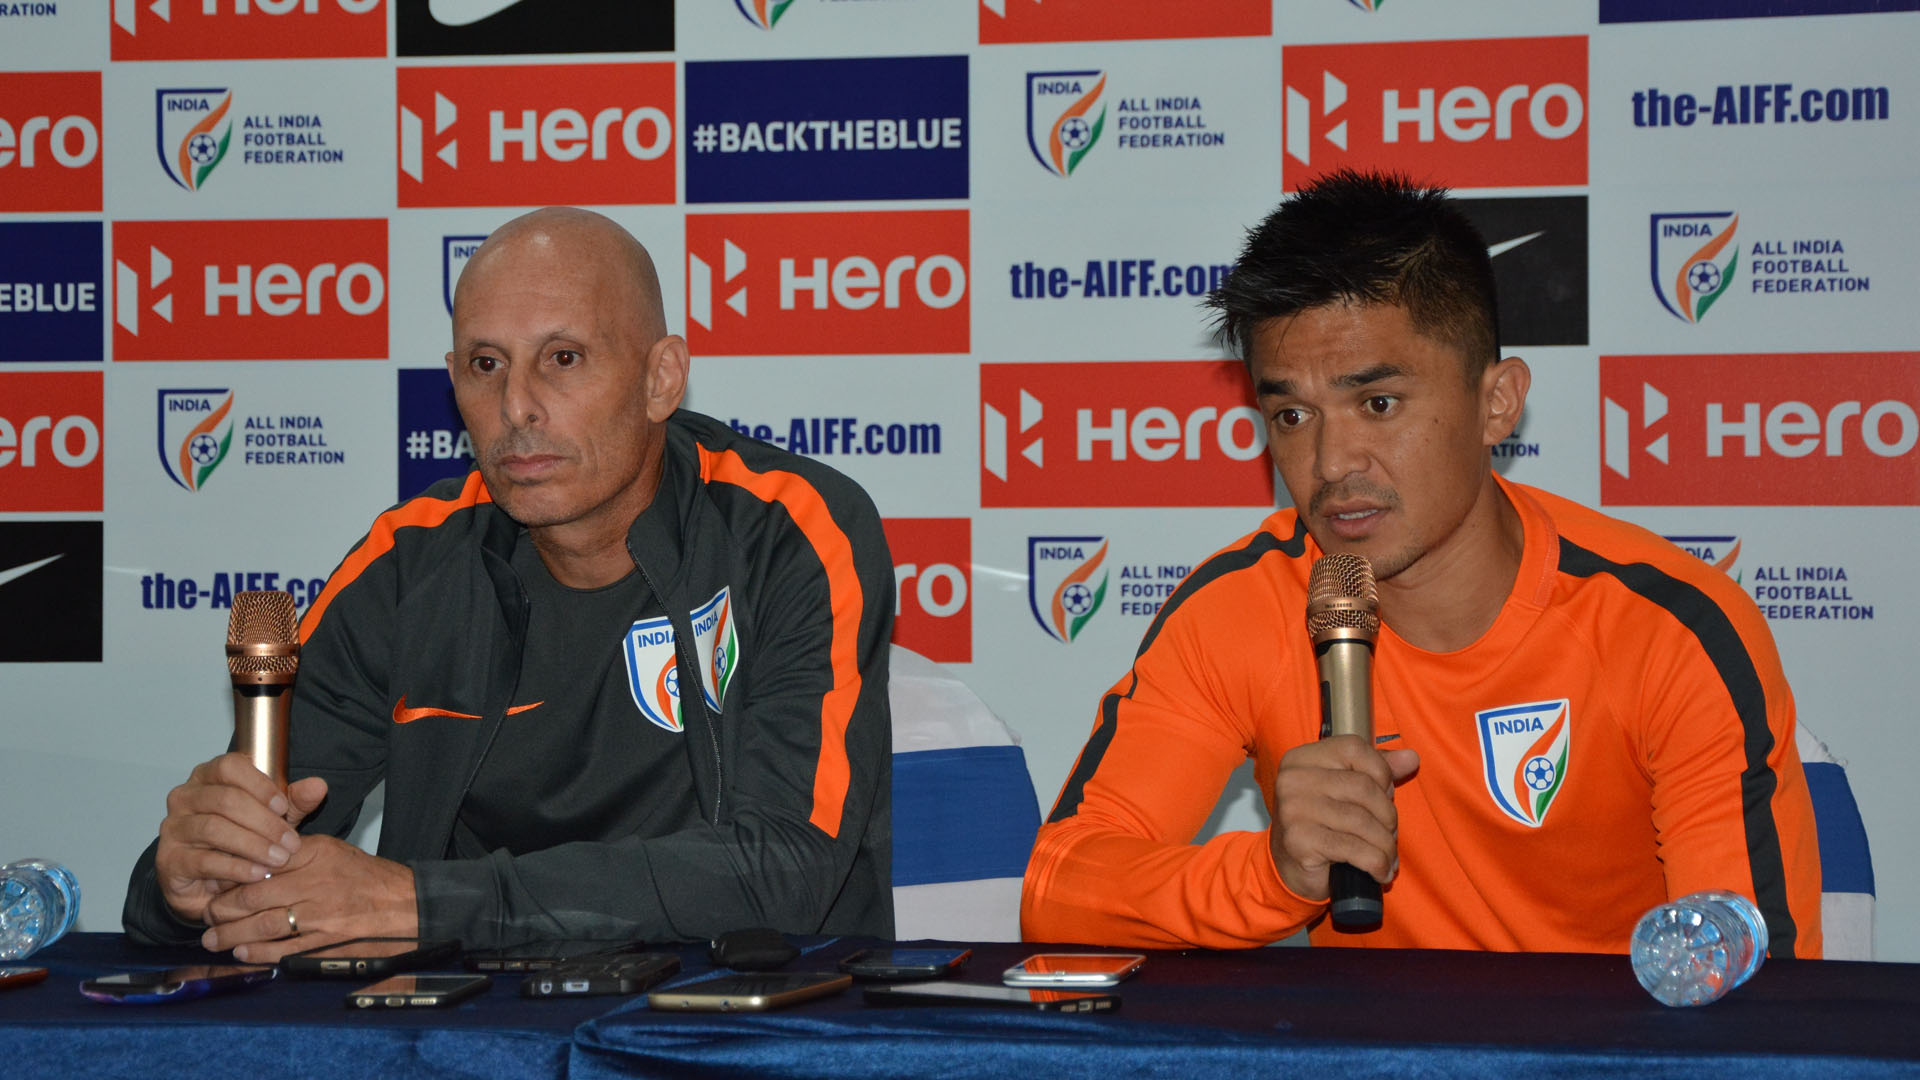 Sunil Chhetri: No issues with India coach Stephen Constantine